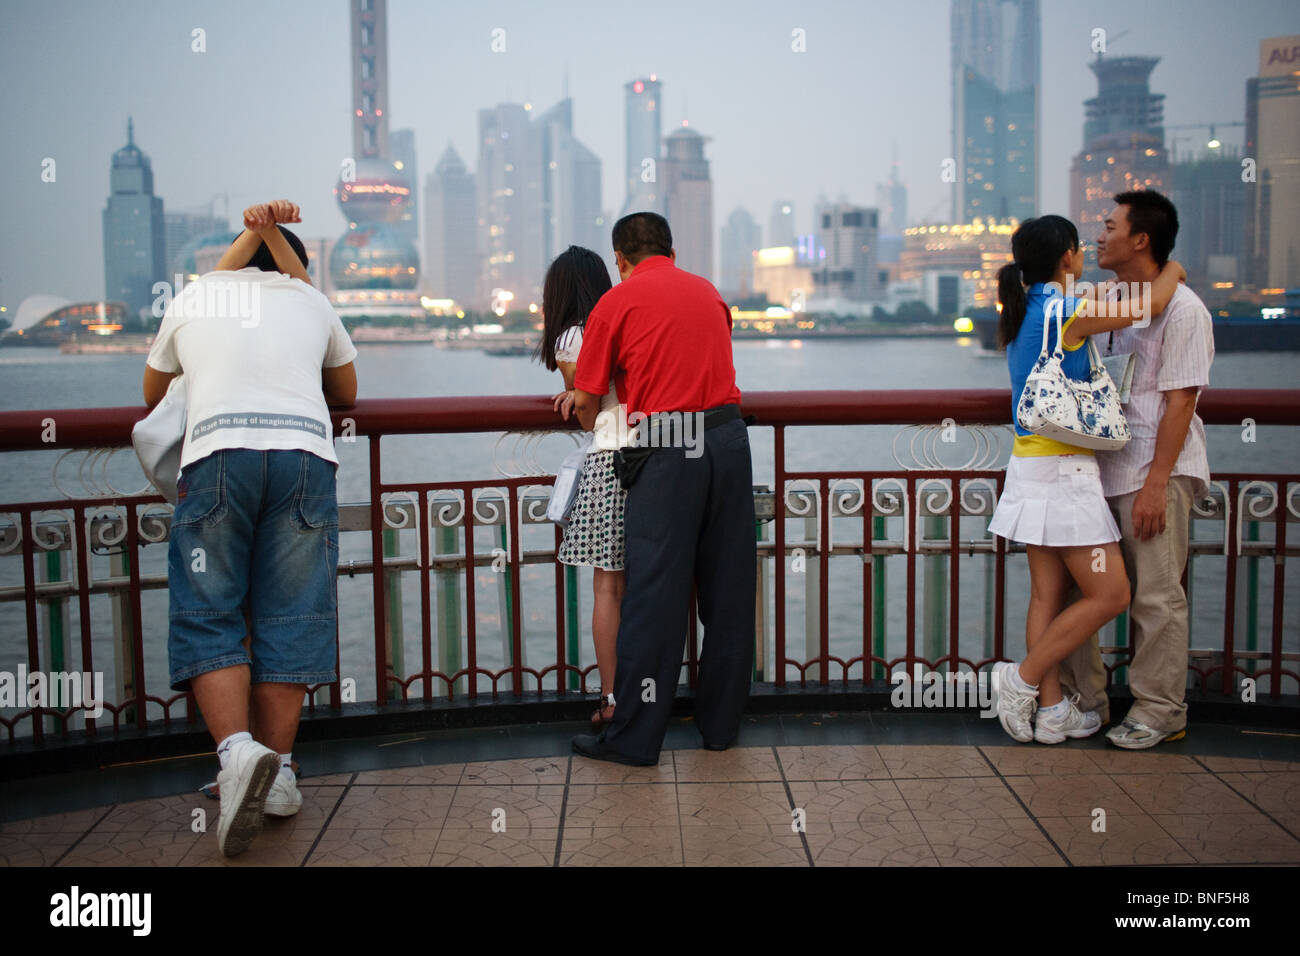 Young Chinese couples on the Bund promenade overlooking modern Pudong district in Shanghai, China, - Stock Image